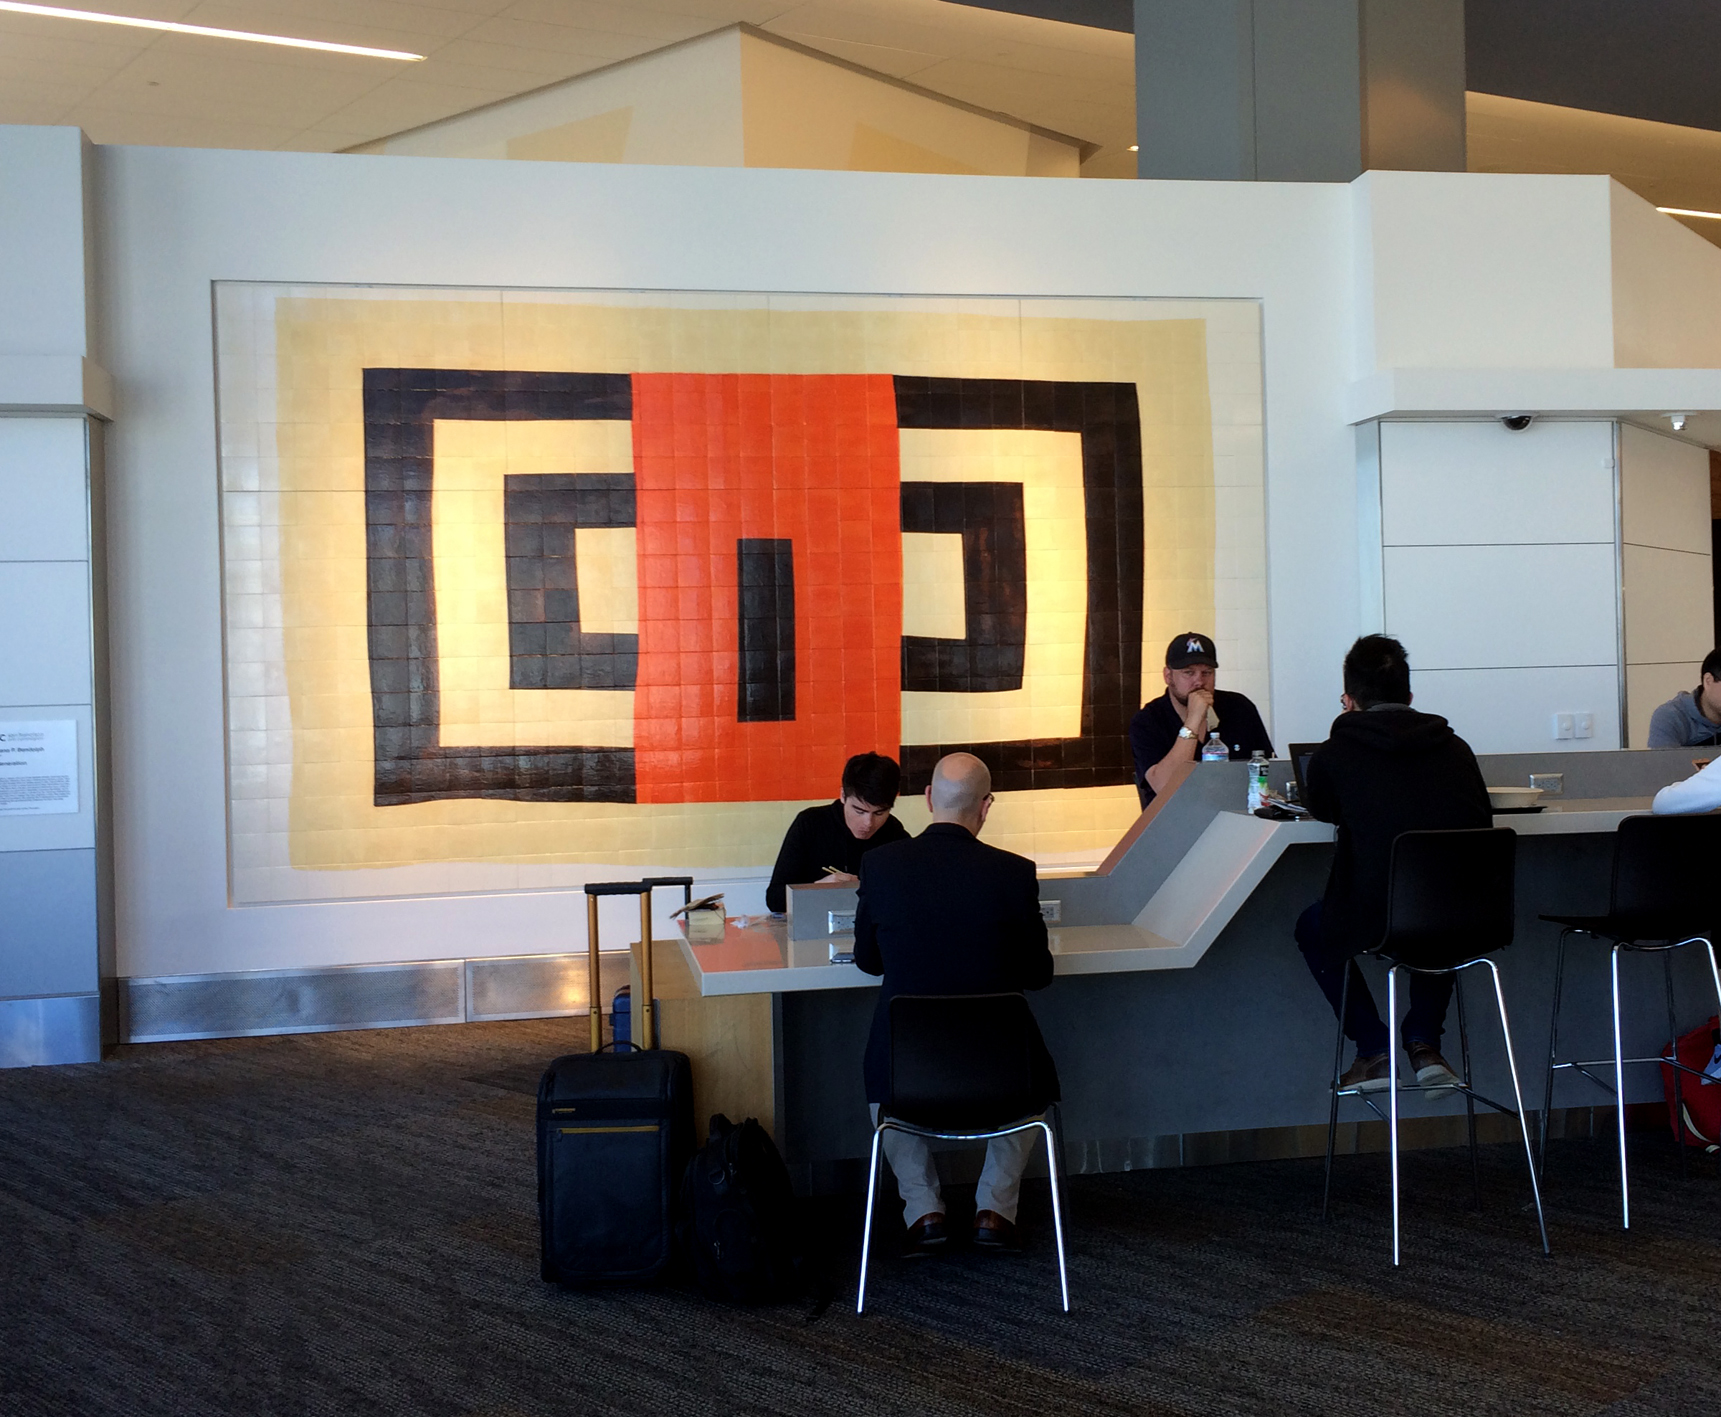 Louisisana Bendolph': New Generation,  (2015). Glazed ceramic tile, 9' x 16'. Commissioned by the San Francisco Arts Commission. Illuminates a lobby at the San Francisco International Airport.   See Full Story>